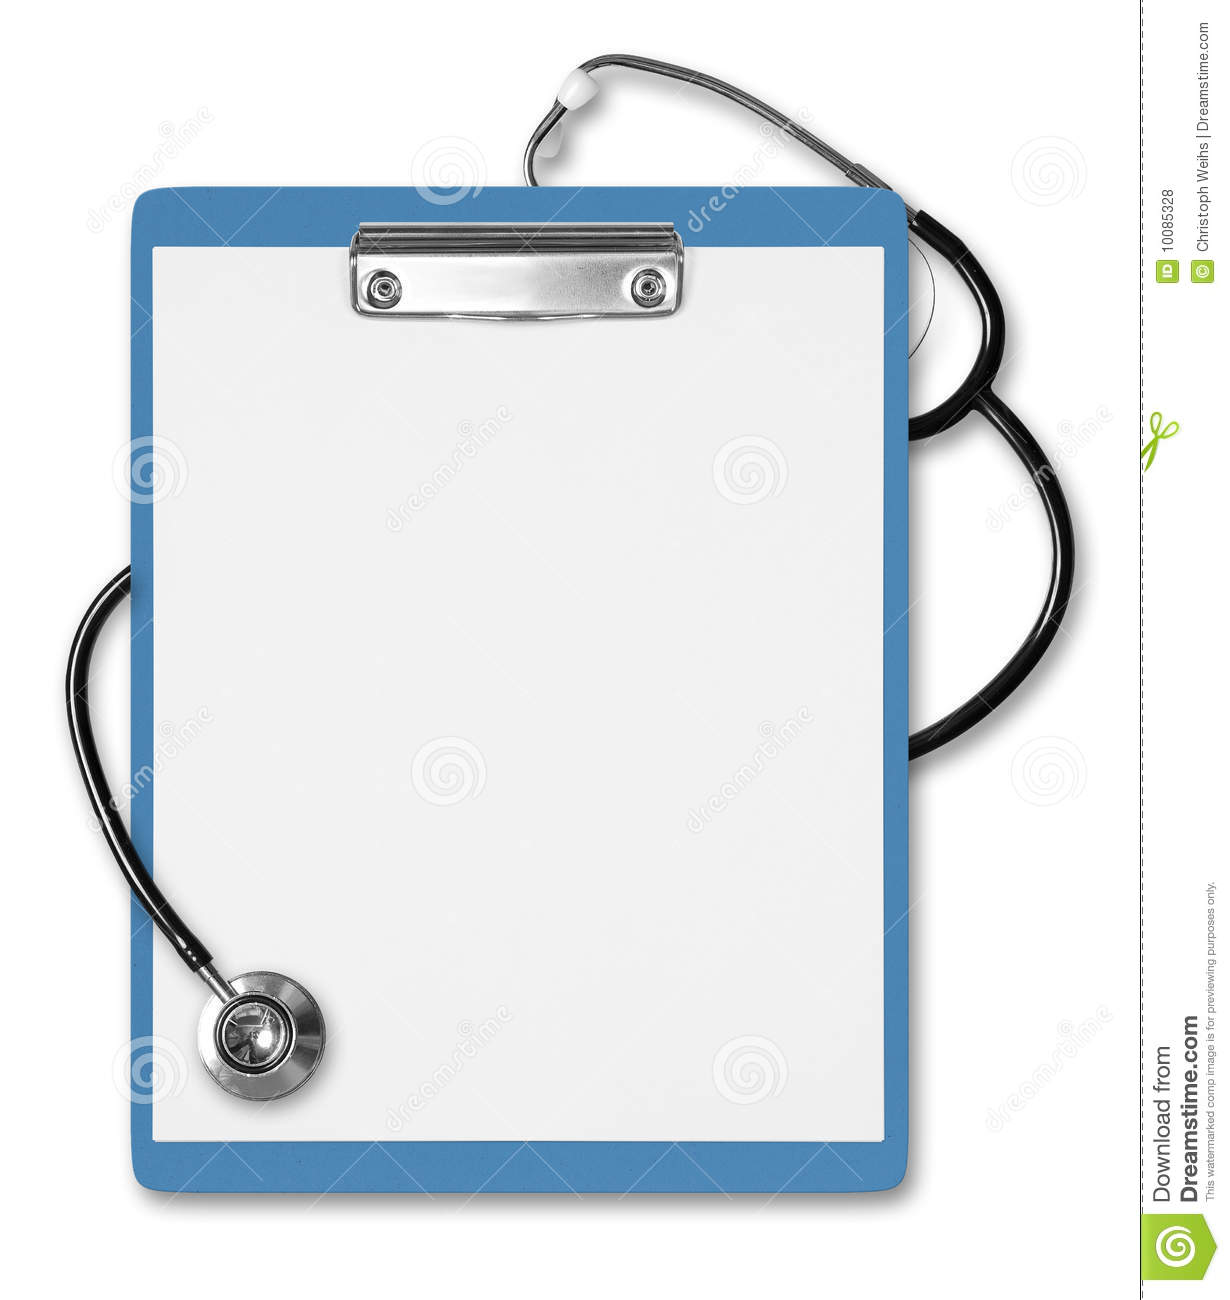 Medical Clipboard Stethoscope Royalty Free Stock Photos   Image